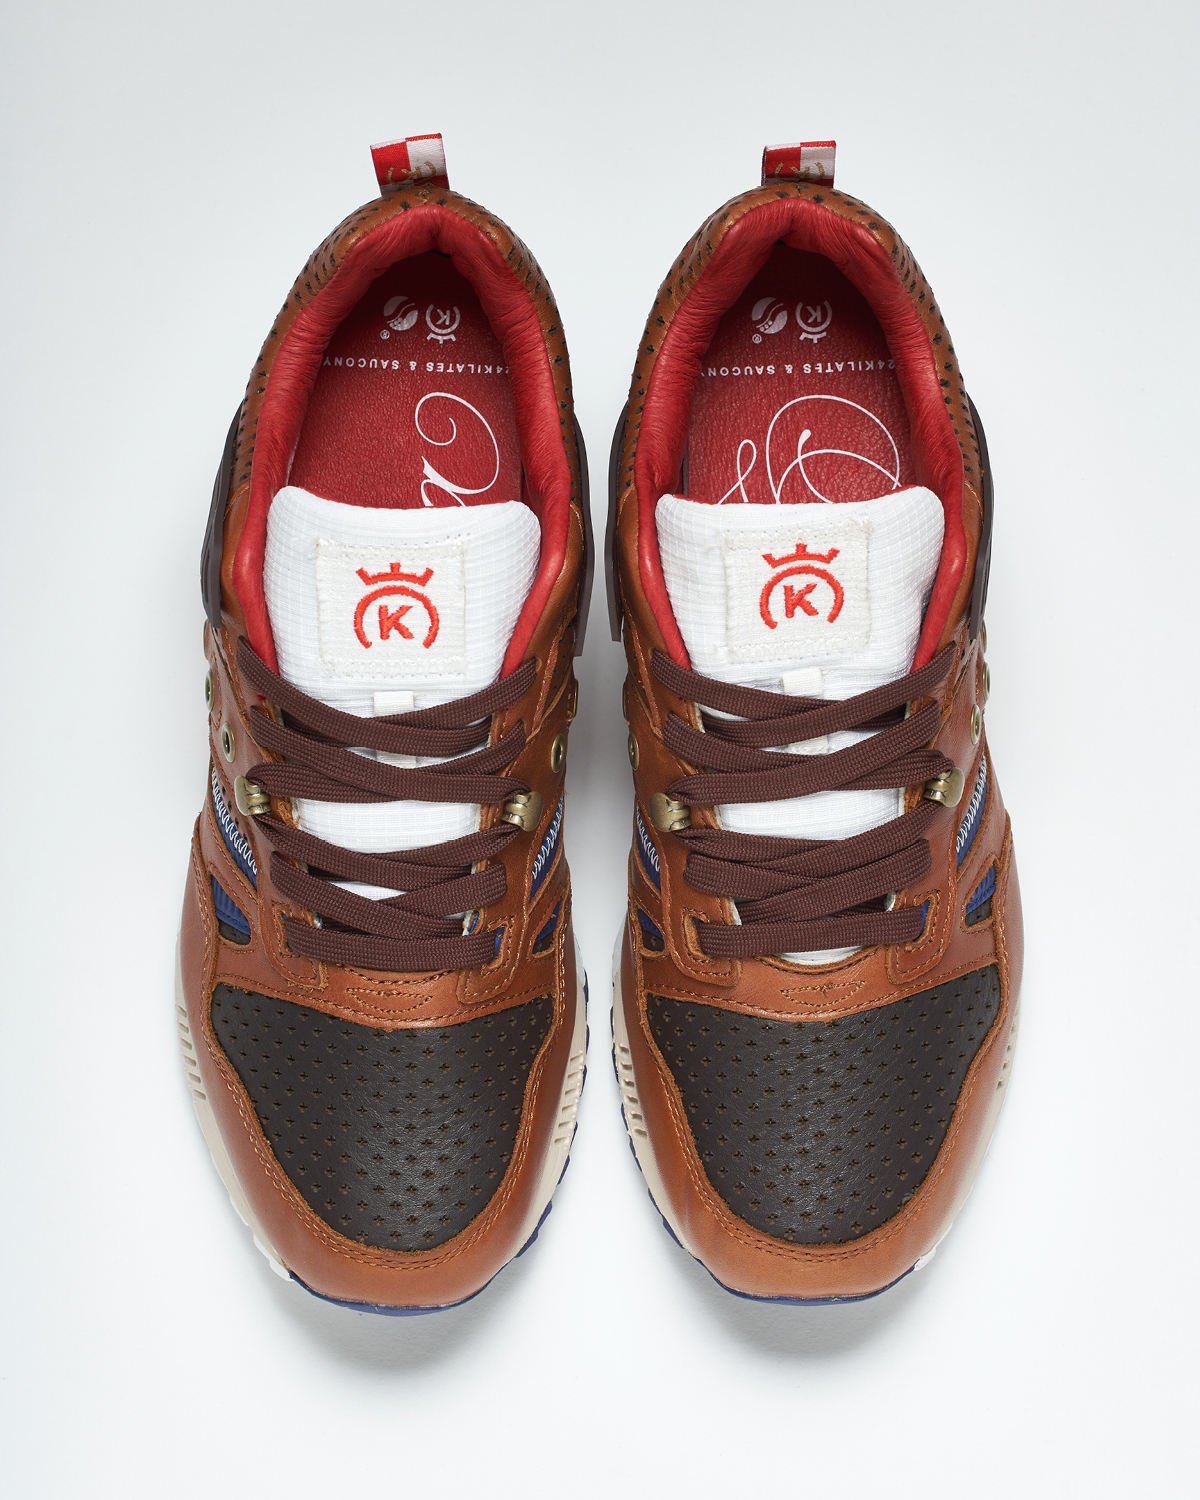 24KILATES-SAUCONY-LAVICTORIA-PRODUCTPICTURES2-3.jpg